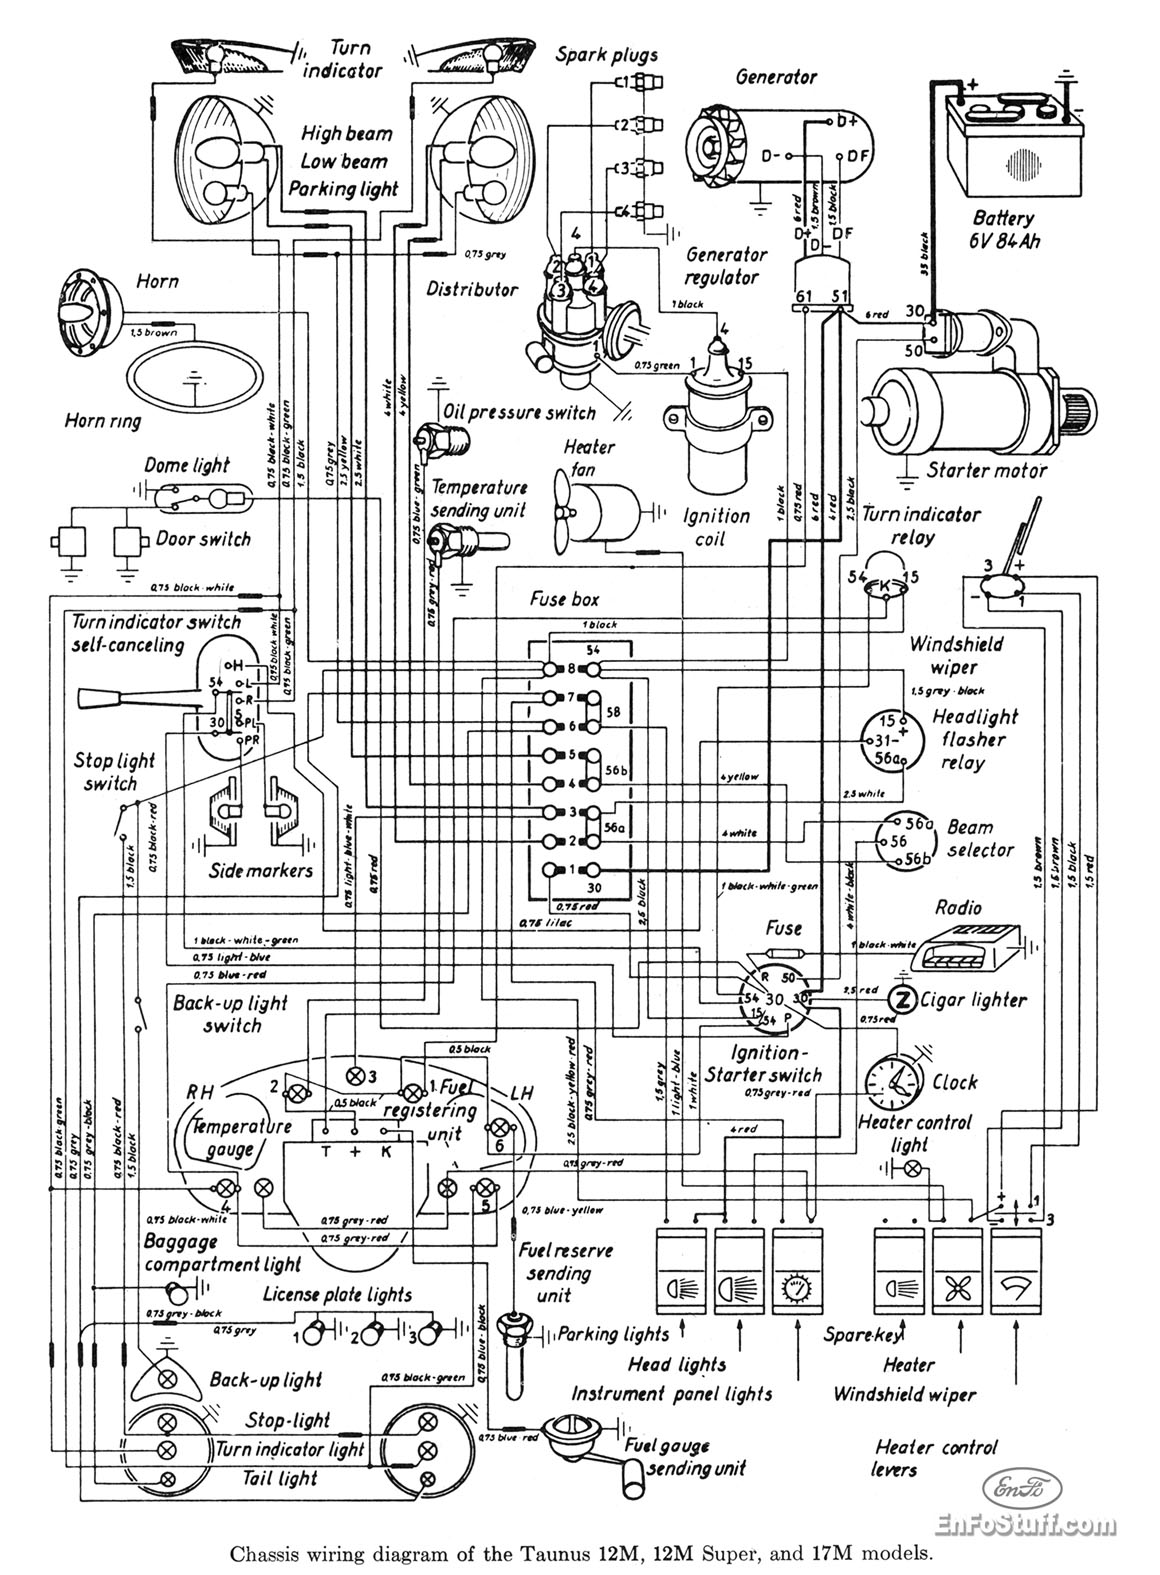 Citroen C4 Wiring Diagram Pdf Will Be A Thing Electrical Diagrams Ford 2005 29 Images Trans Manual 1999 Mercedes